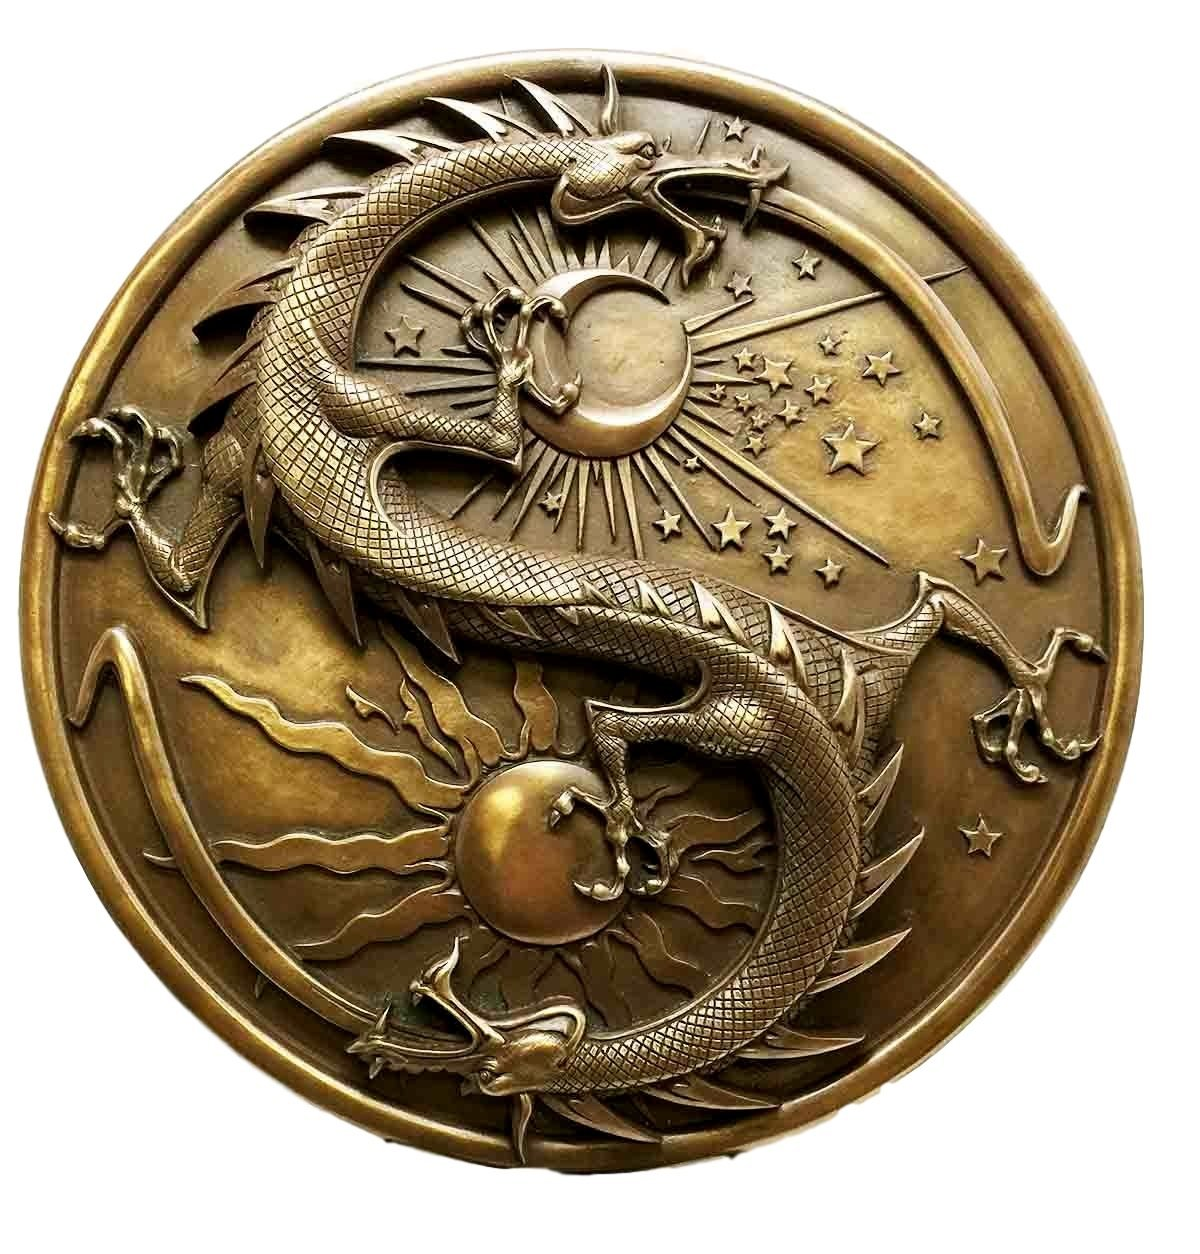 Ebros Double Dragon Alchemy in Robust Yin Yang Astrology Fusion Wall Plaque Scul - $49.99